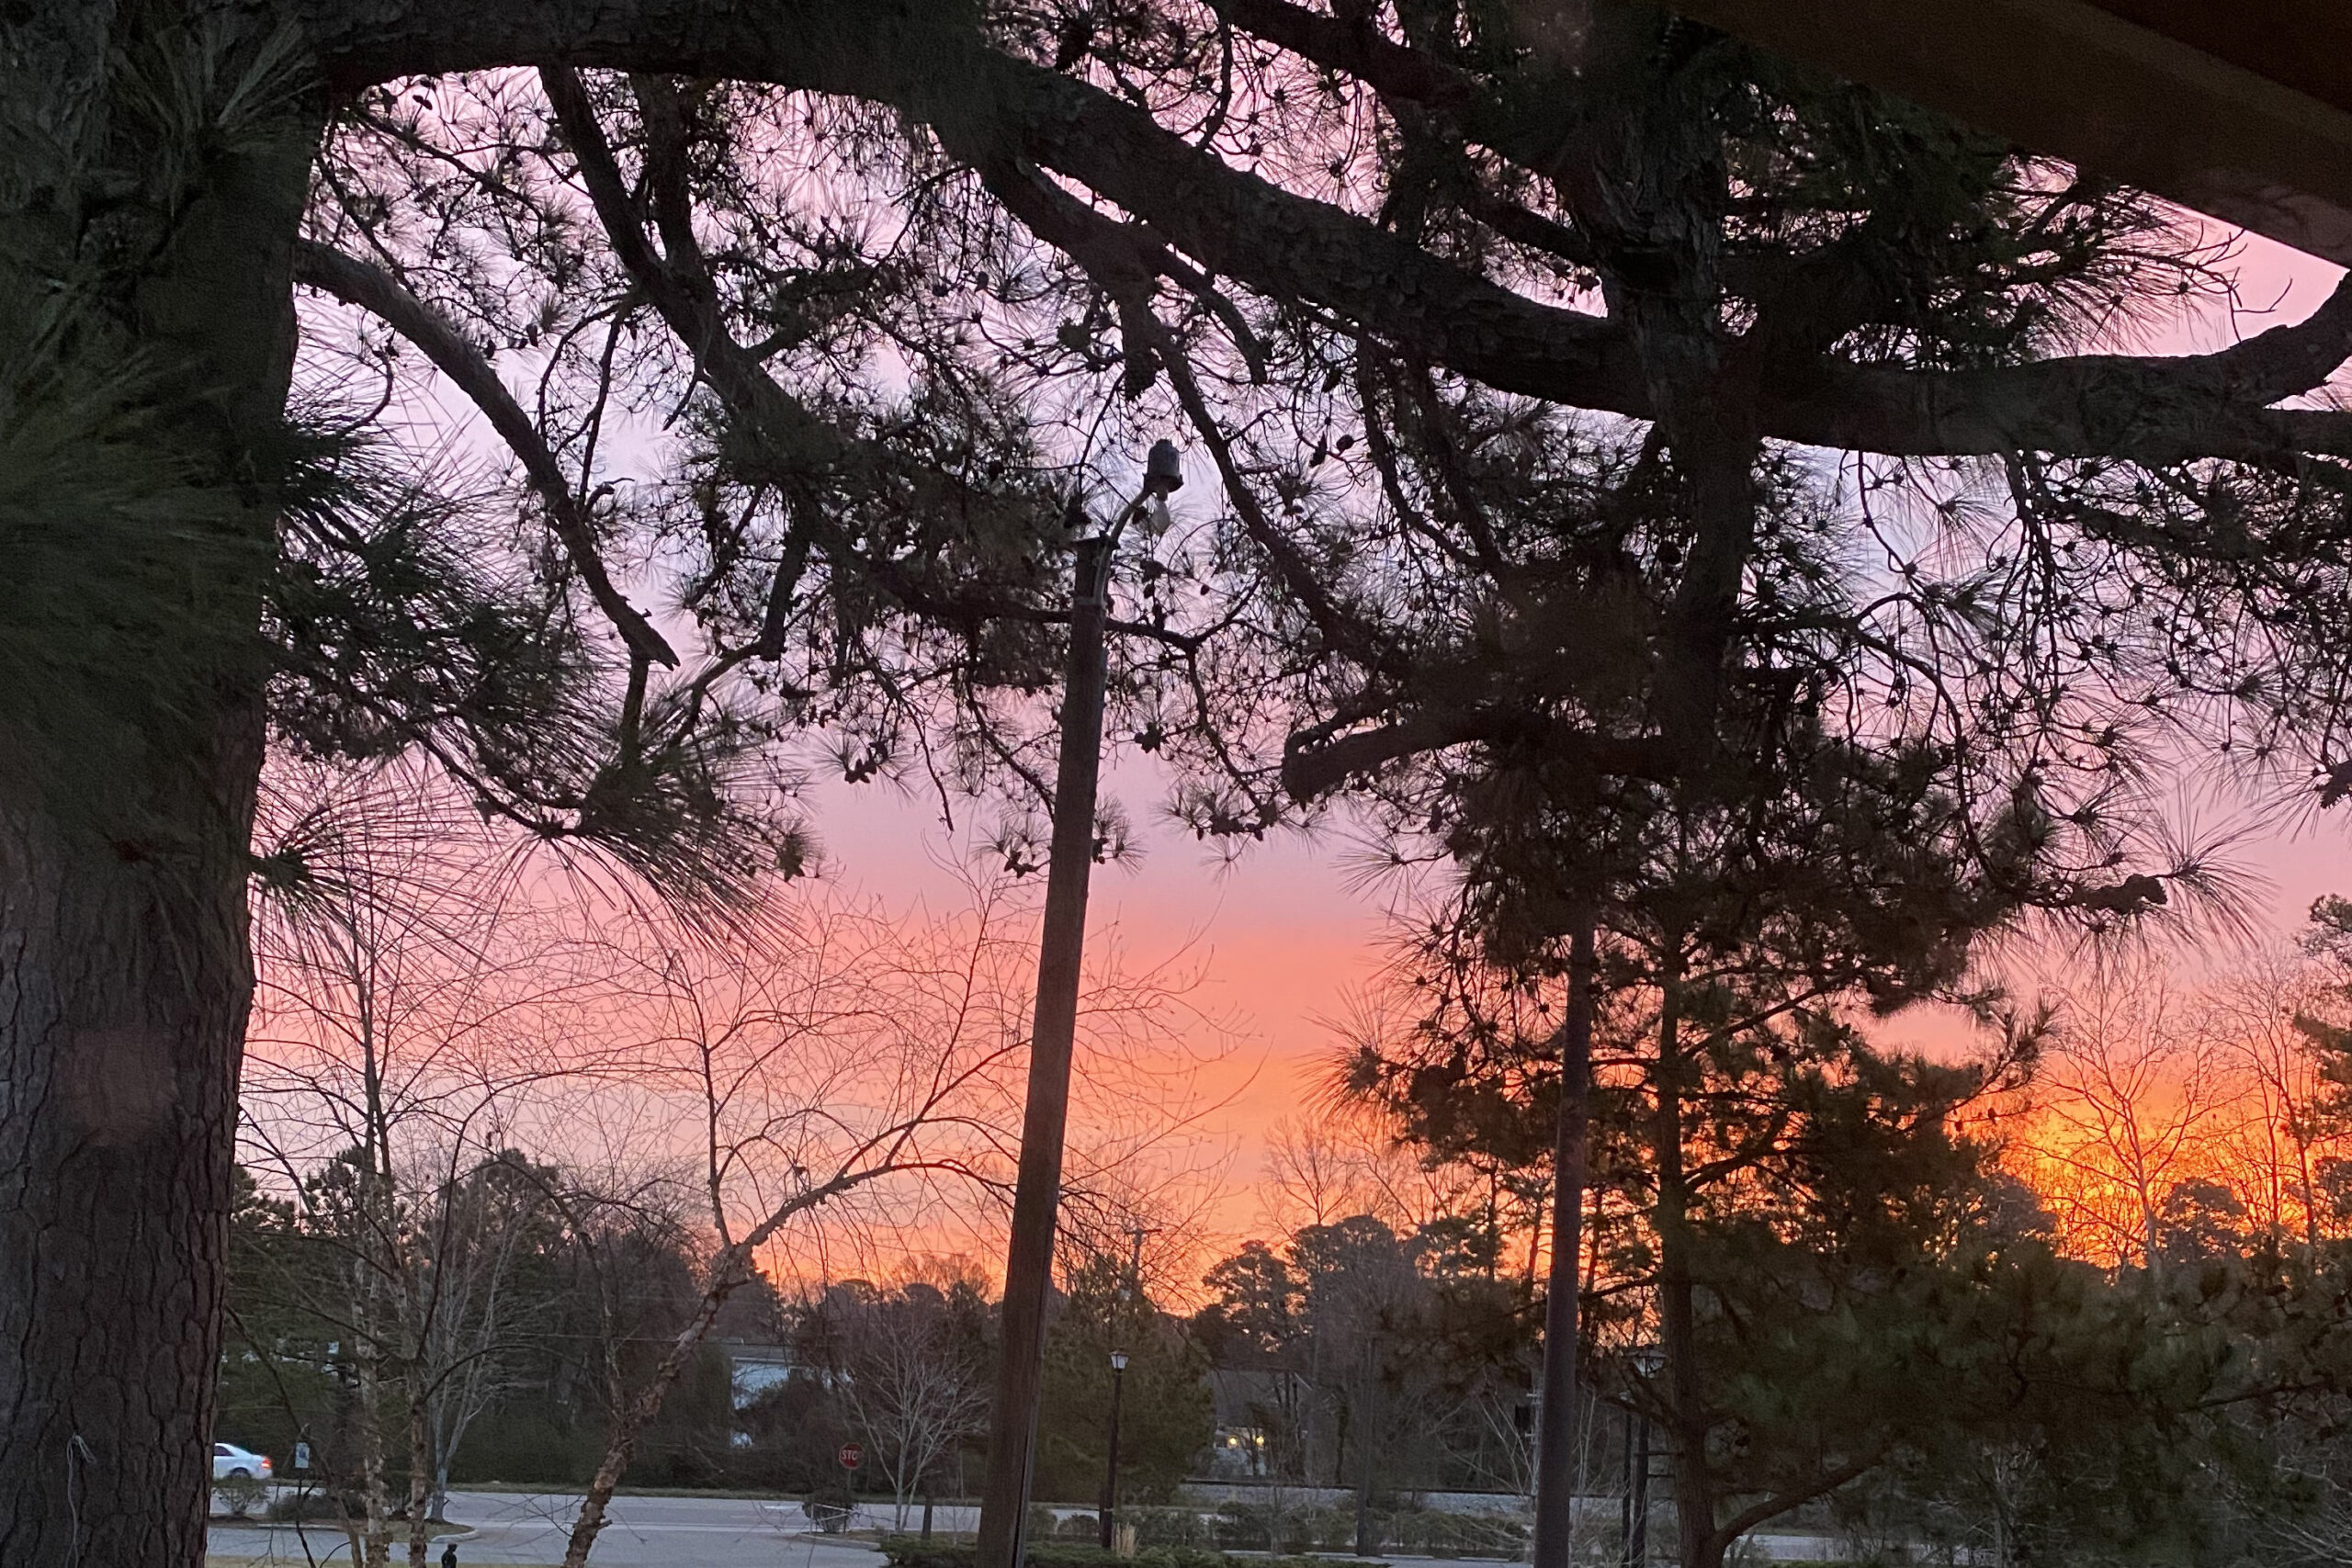 photo of the sun rising, tinting the sky with orange, pink, and purplish tones.